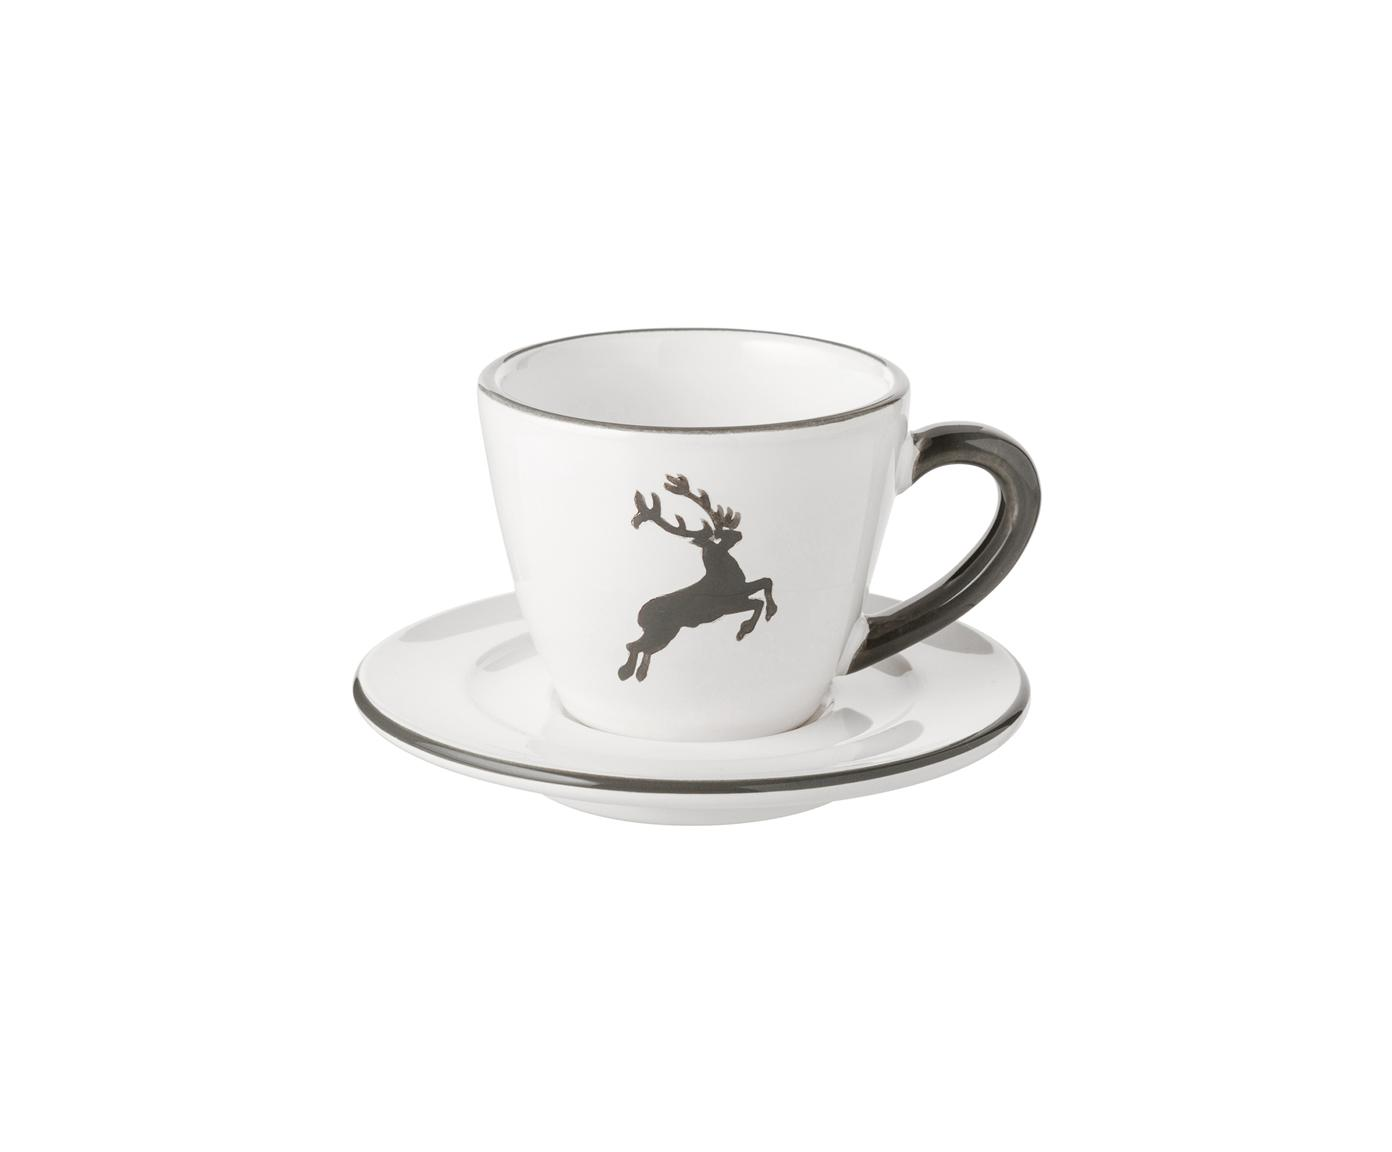 Espressokop en schotel for you Gourmet Grijze Hert, 2-delig, Porselein, Fine Bone China, Grijs, wit, 60 ml